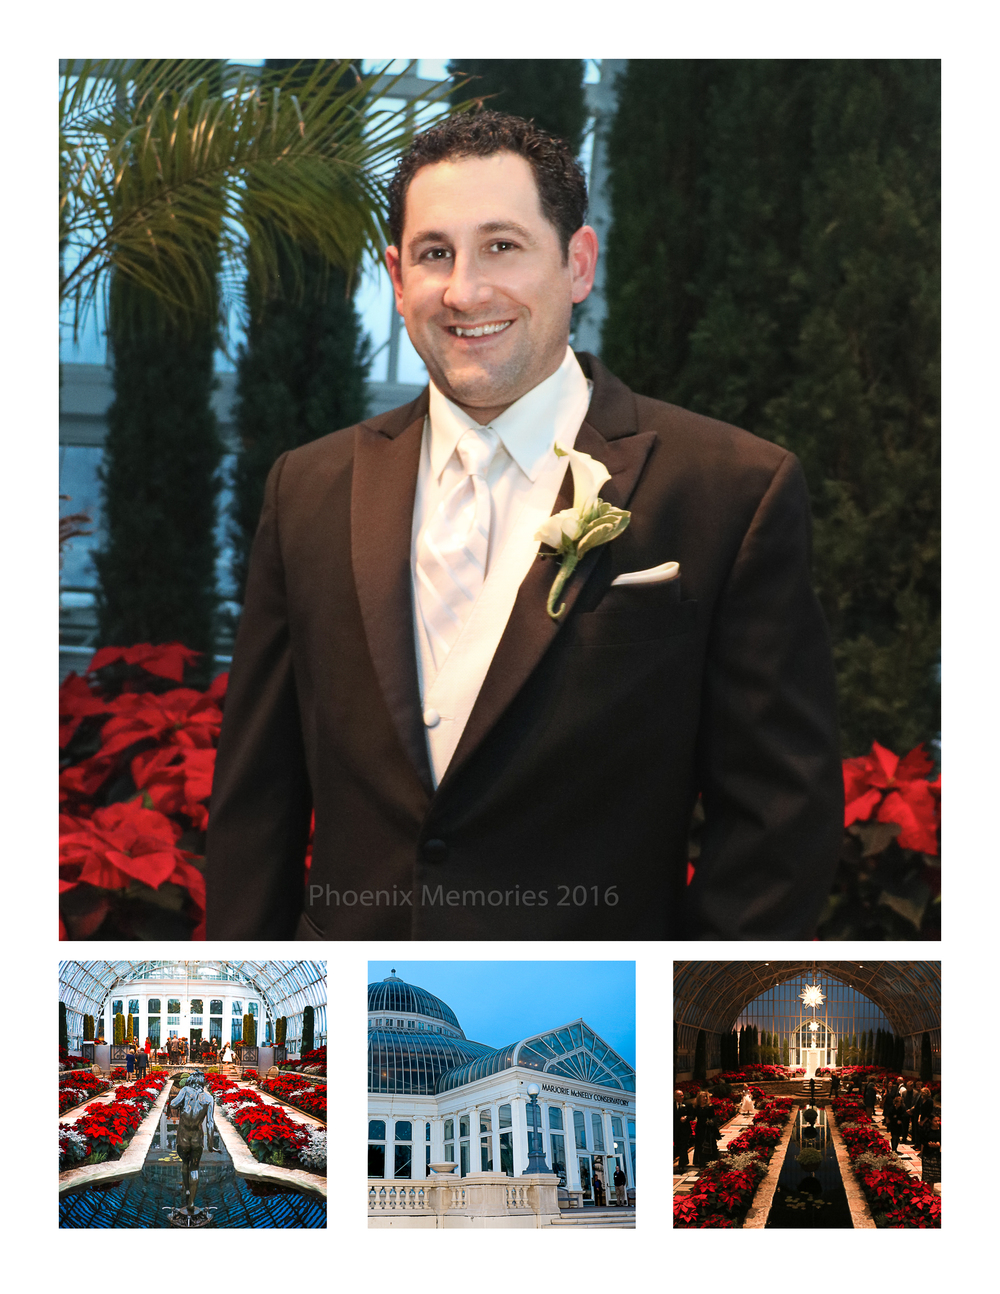 The Handsome Groom was ready and waiting at the  Como Park Conservatory Sunken Garden  for his Bride. It may have been a cold December day outside, but hearts were warmed by this stunning venue, filled with Christmas florals.